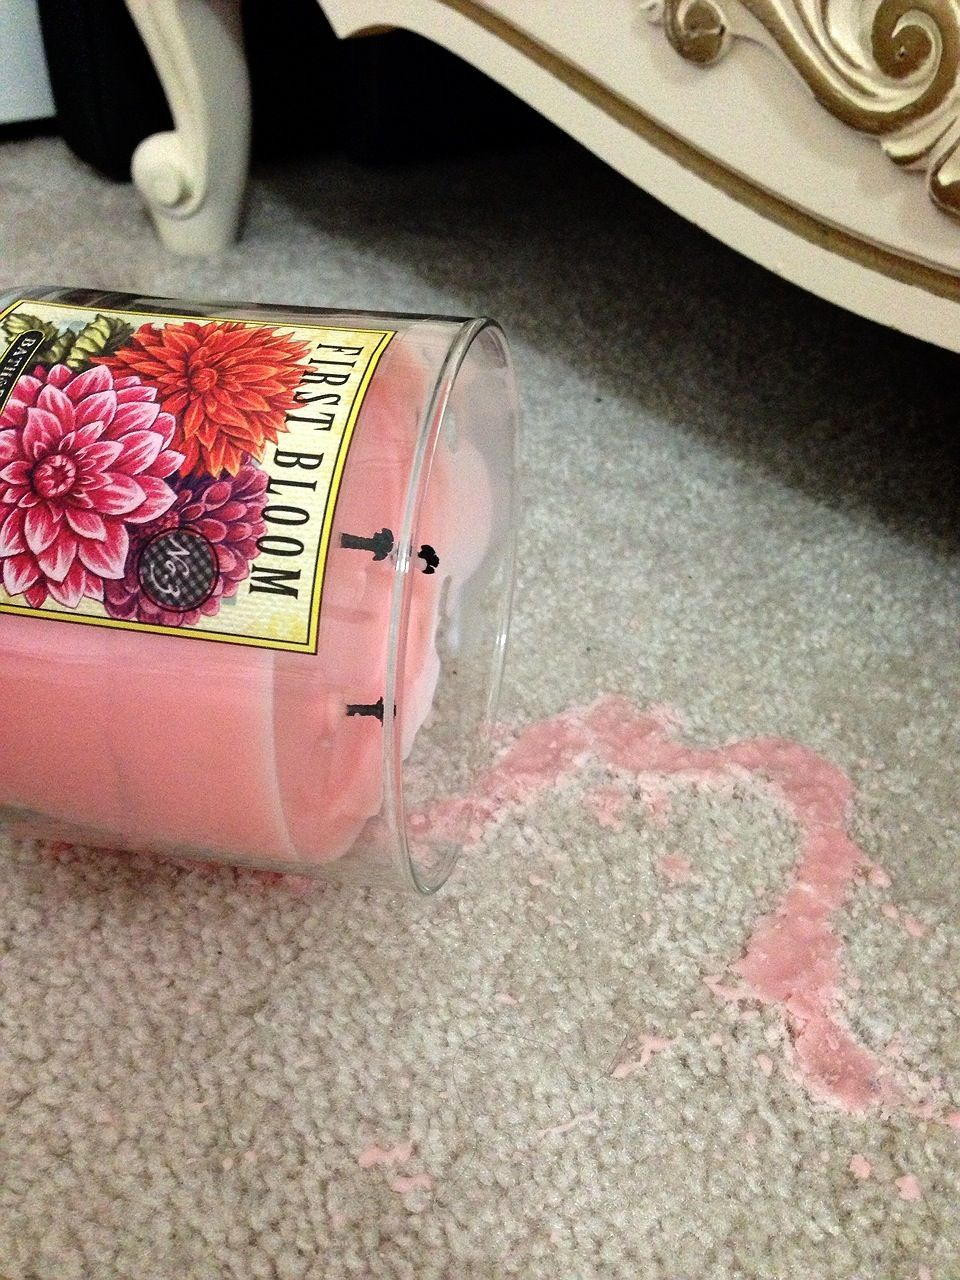 How to clean candle wax out of the carpet